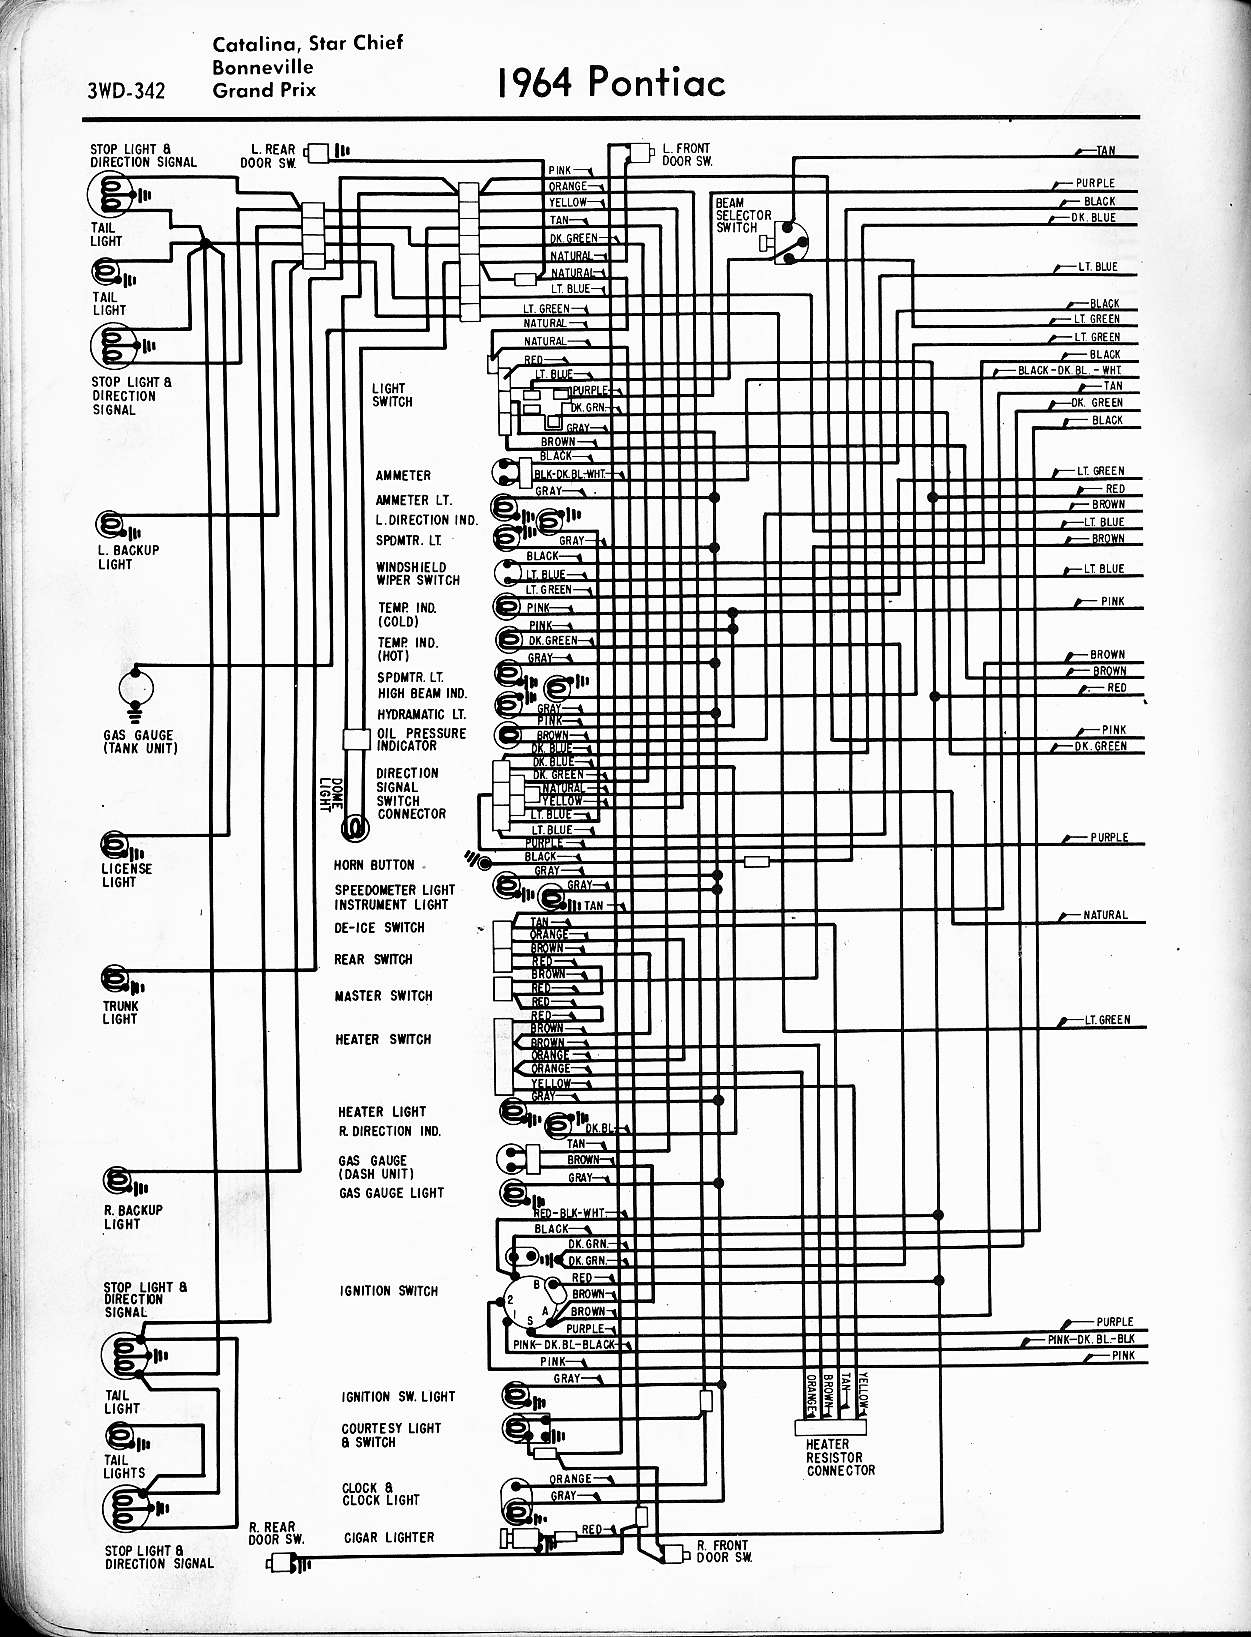 Modern Asystat655a Wiring Diagram Picture Collection - Wiring ...